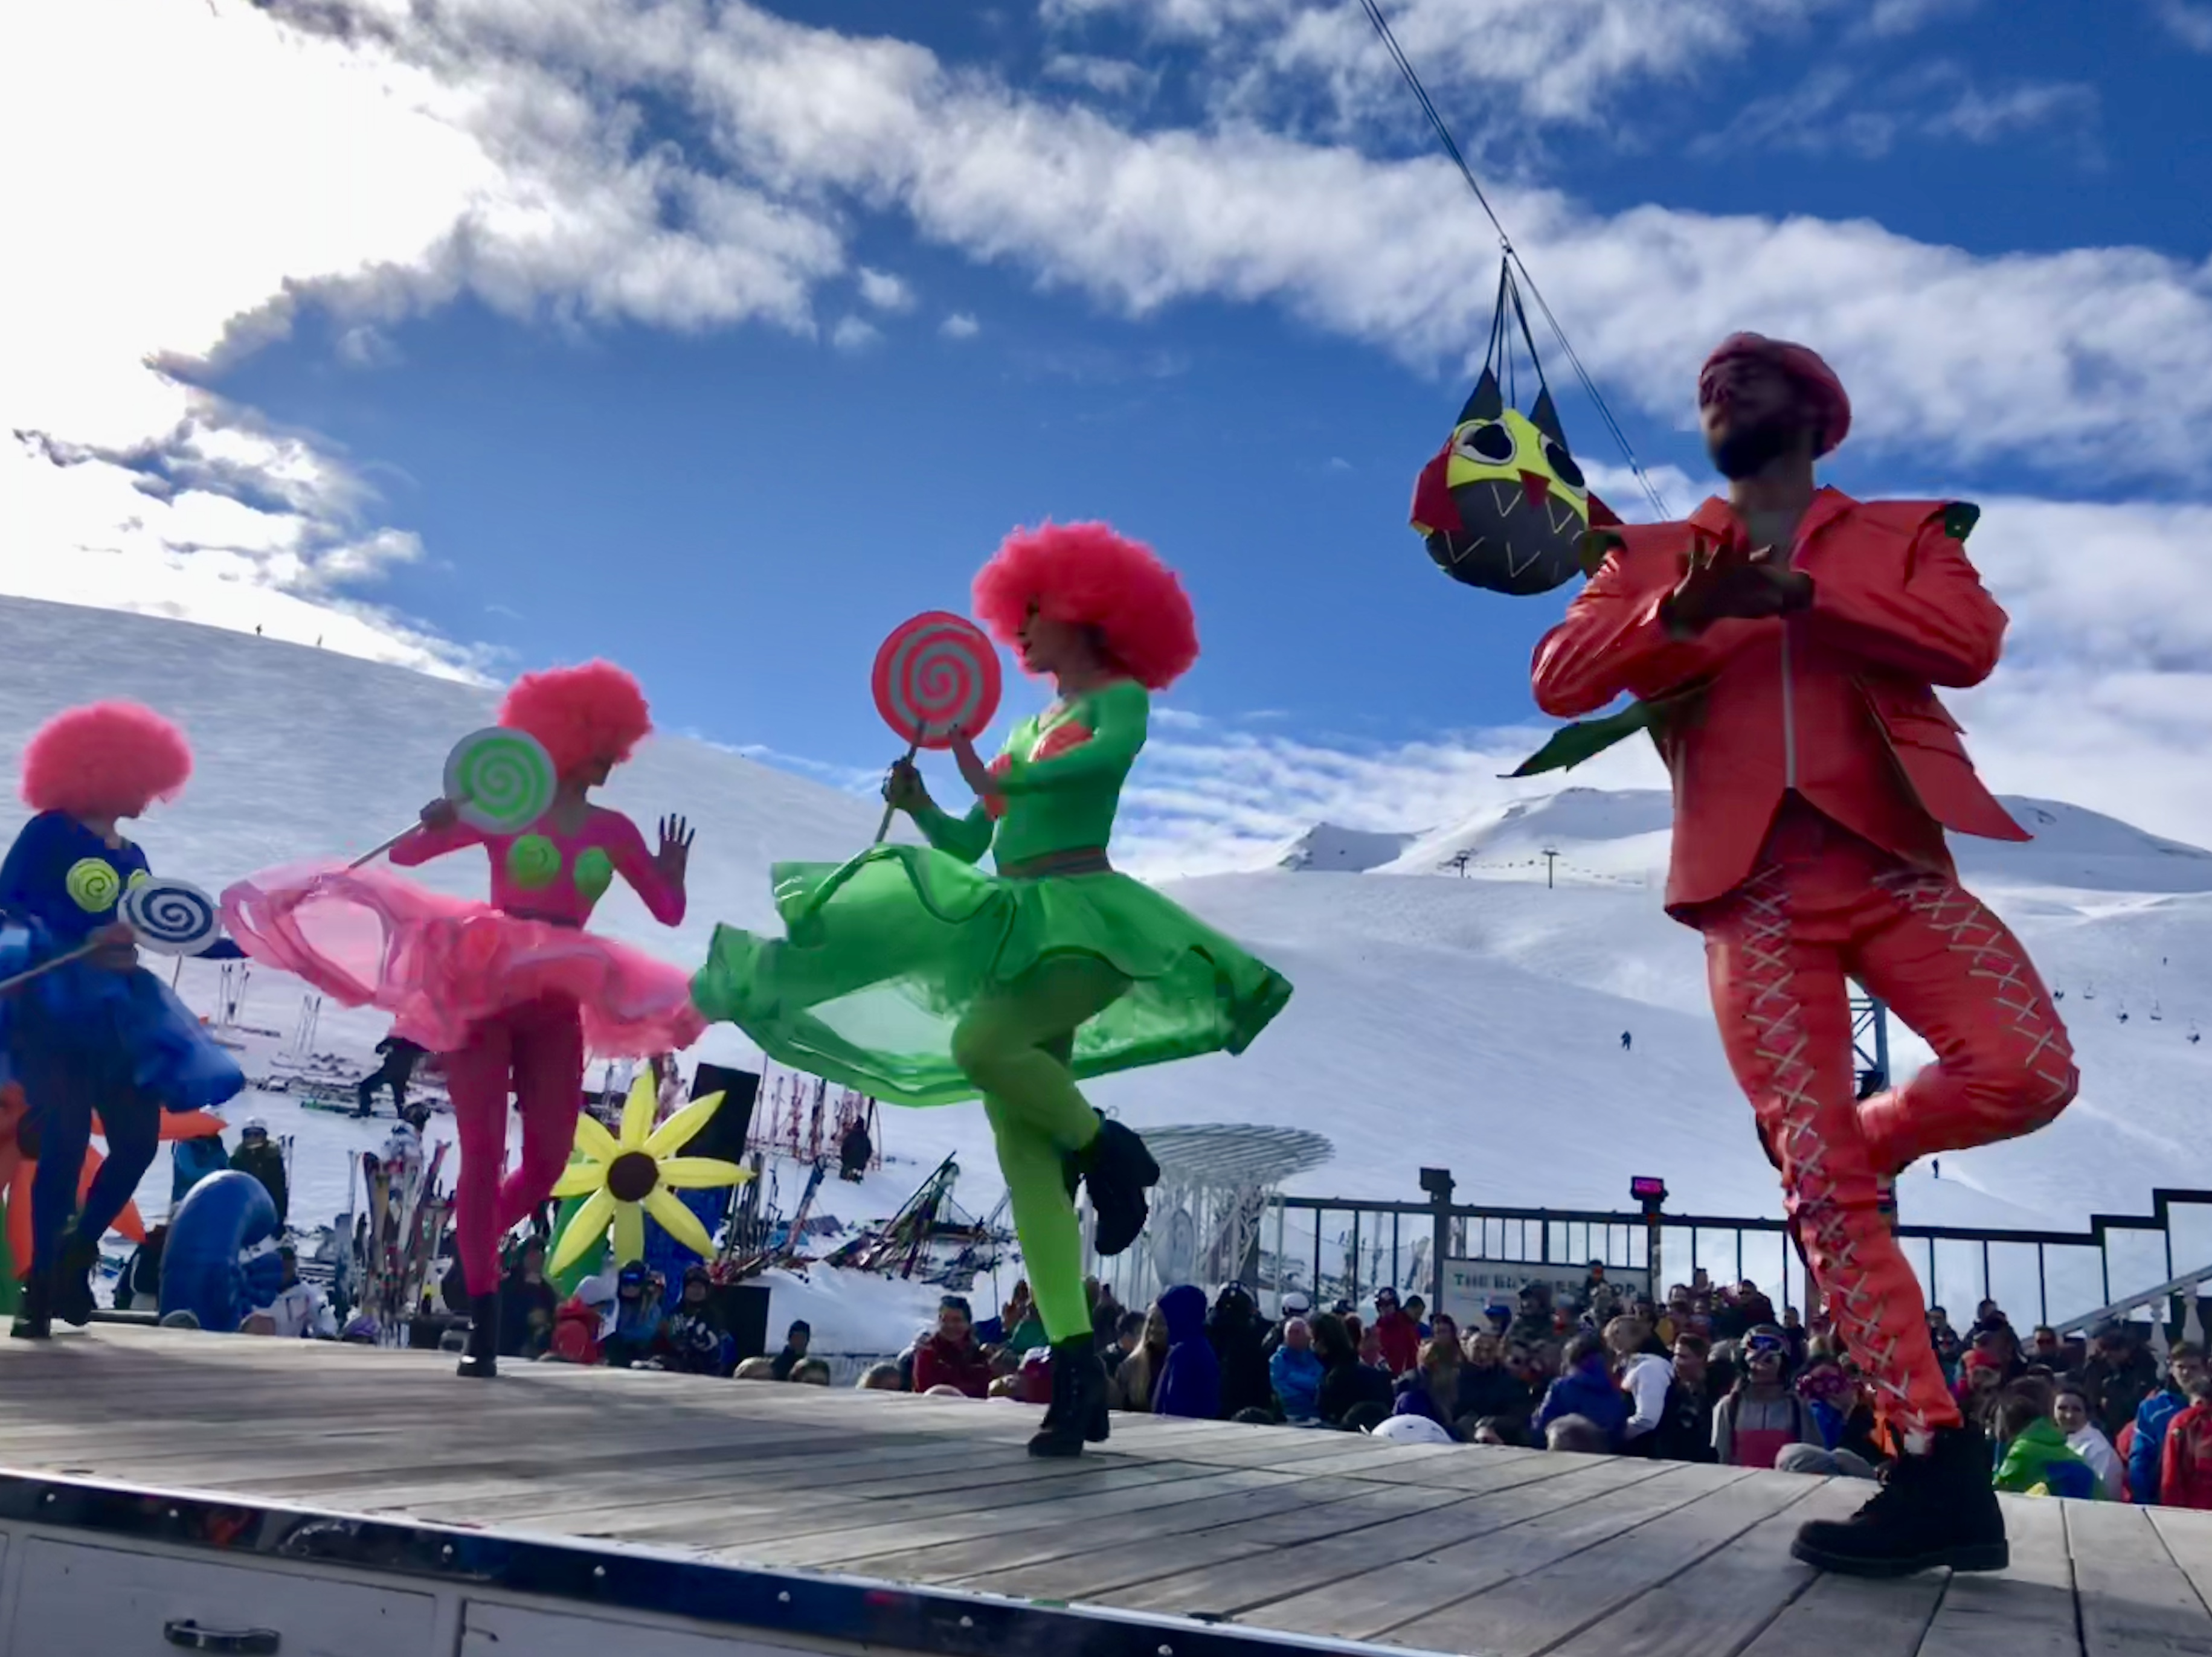 Après ski starts on the mountain at lunchtime at the world-renowned La Folie Douce, a restaurant, bar and cabaret.